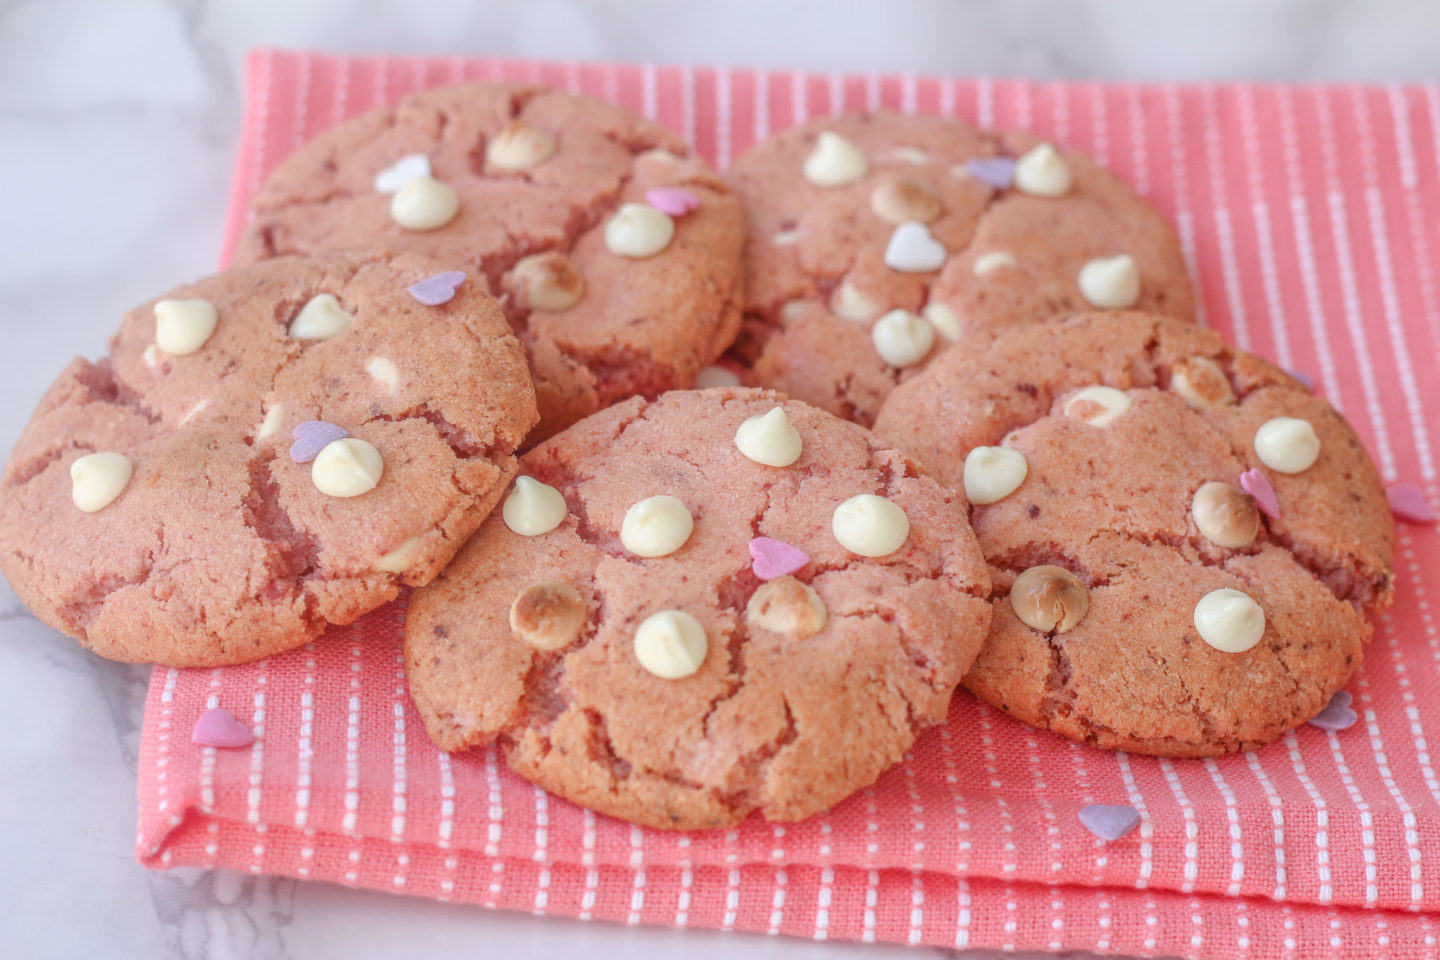 several strawberry white chocolate cookies on top of pink tea towel